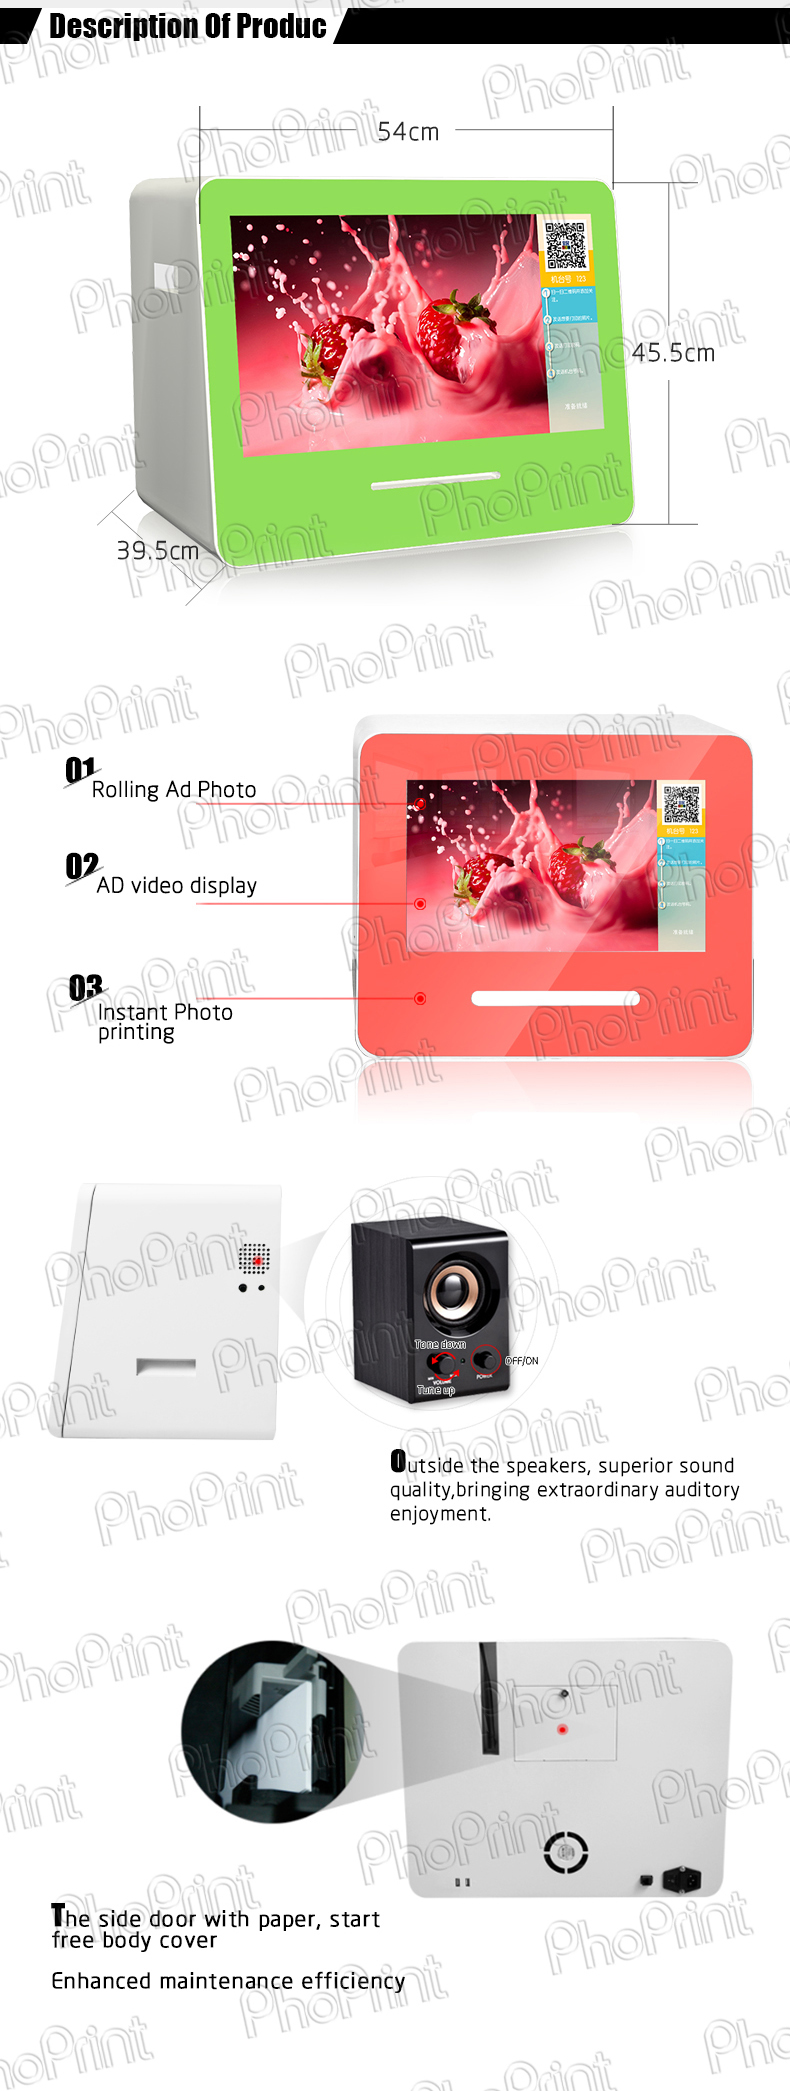 Oem Advertising Equipment Diy Photo Template Photo Booth Custom Made Case For Insta Gram Print Boft Wechat Photo Machine Factory Buy Oem Advertising Equipment Wechat Photo Machine Factory Custom Made Case For Insta Gram Print